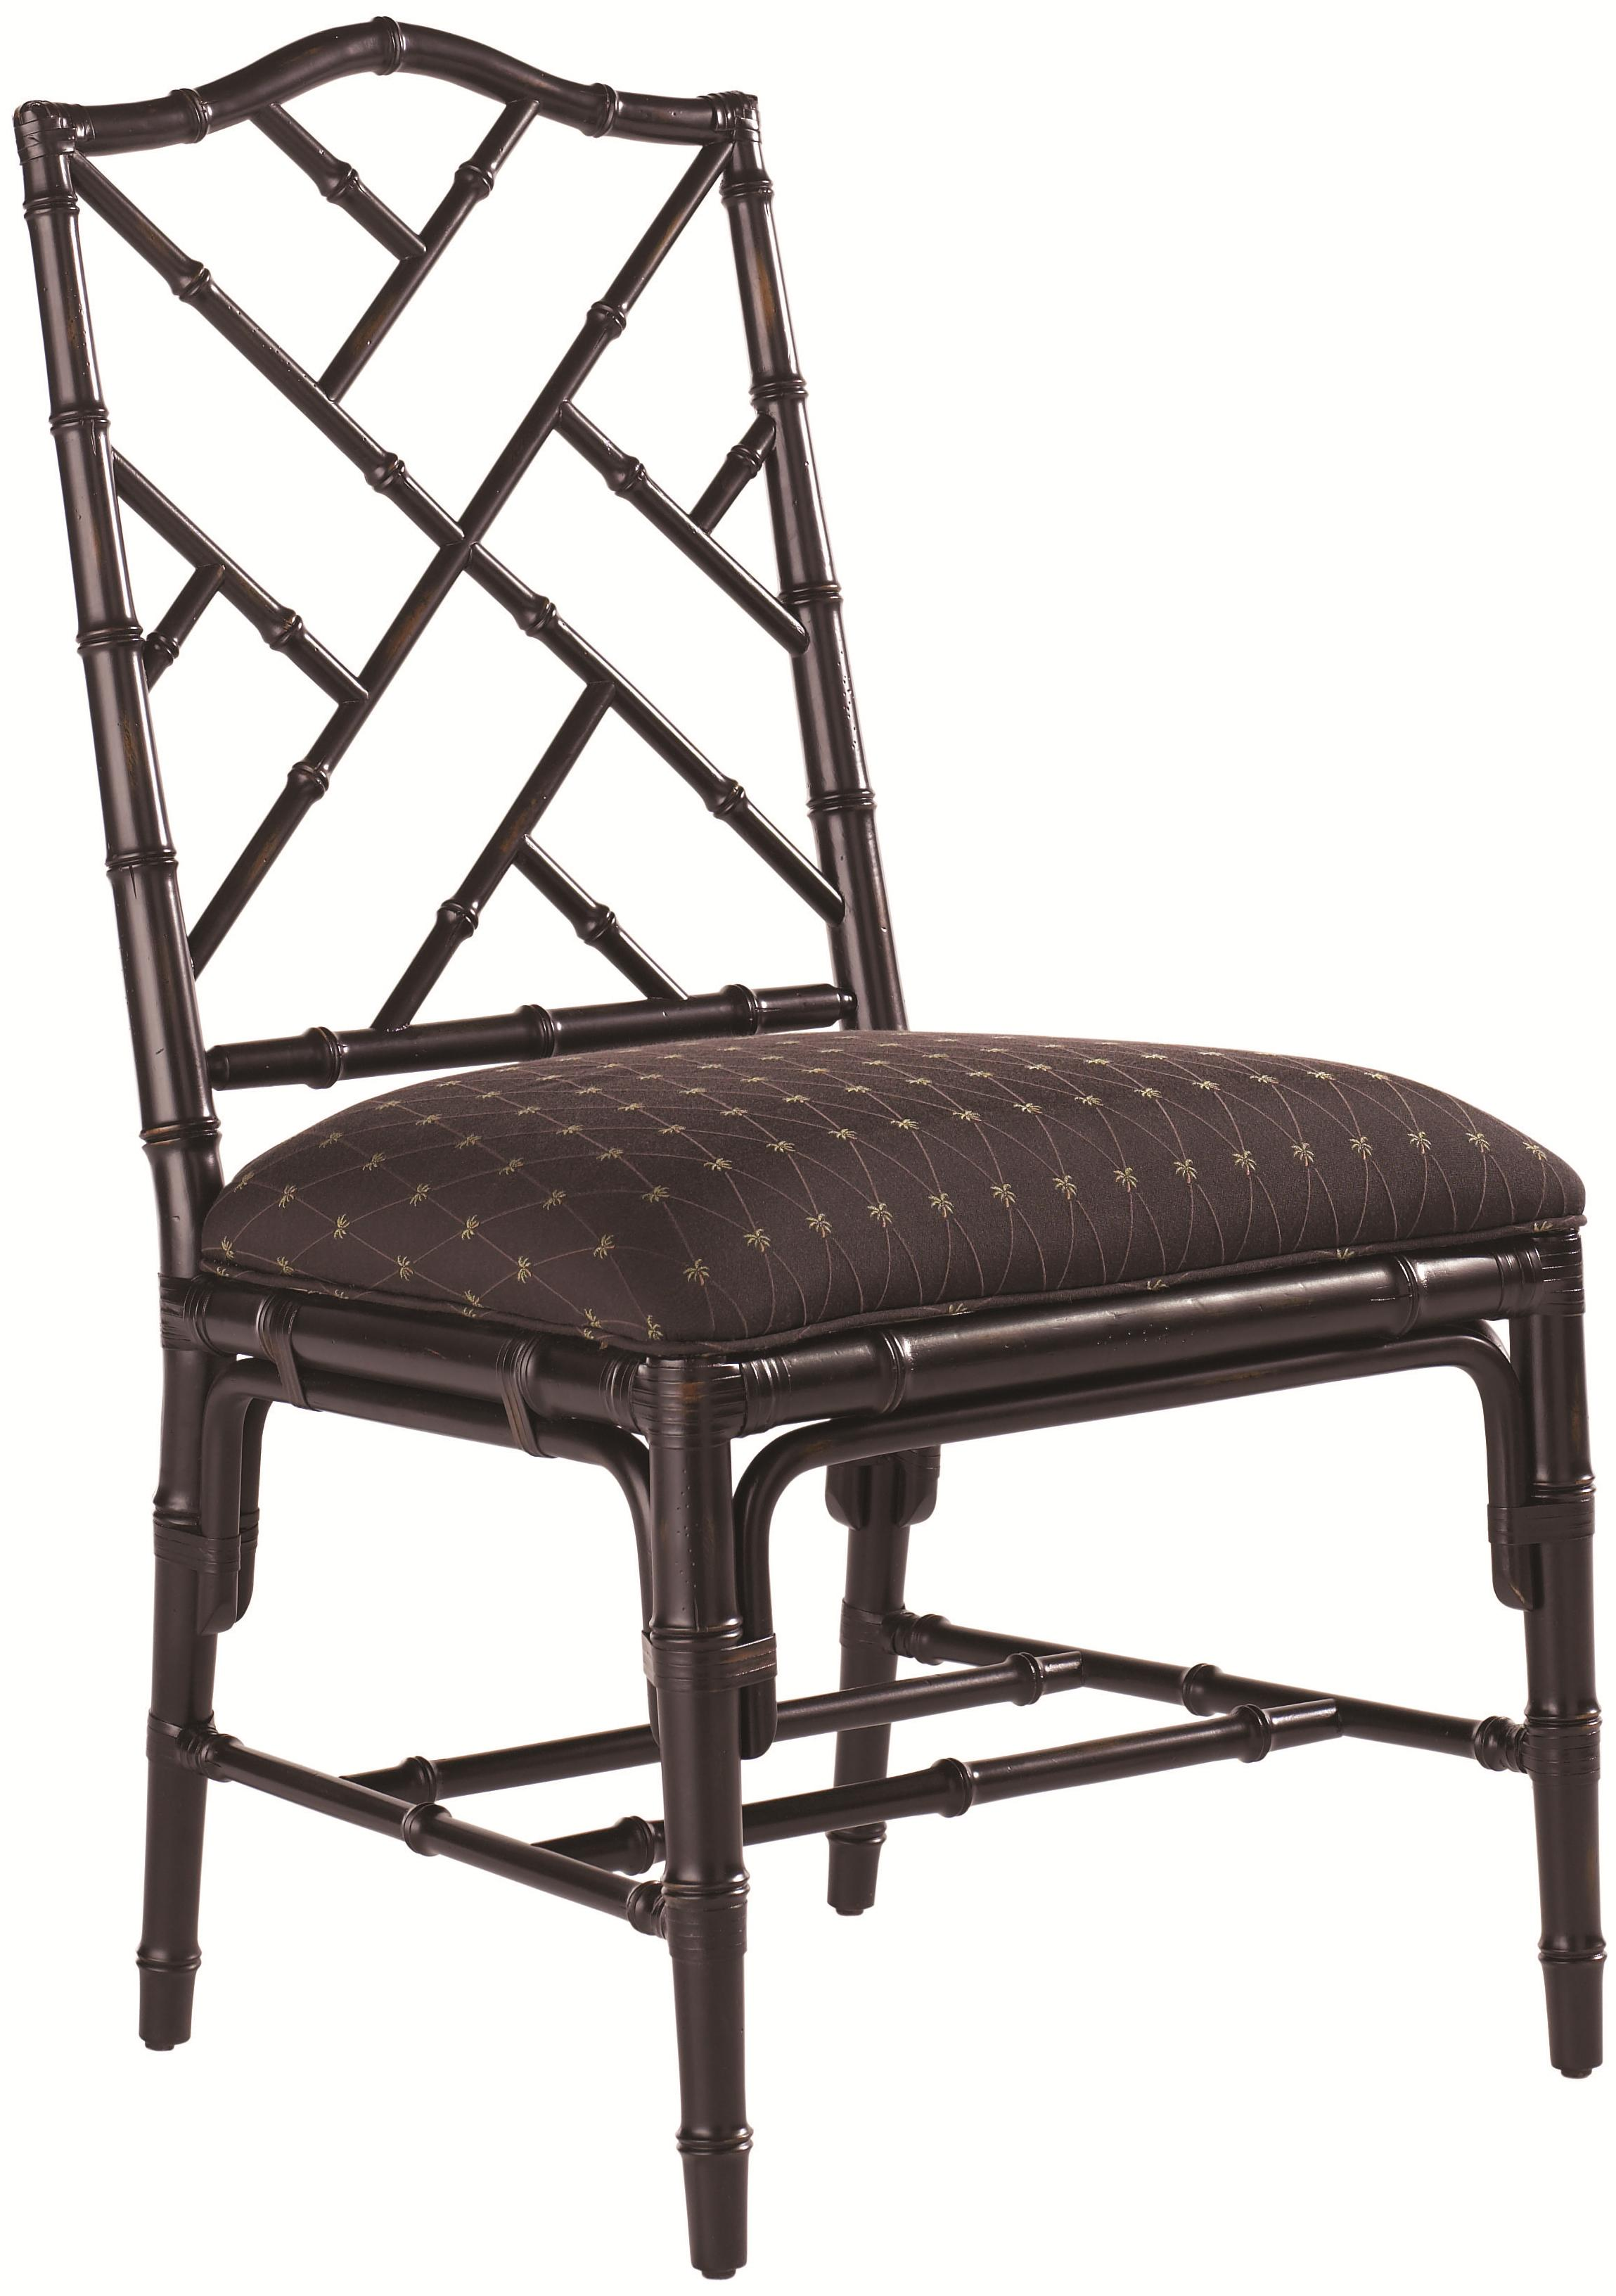 Island Estate <b>Customizable</b> Ceylon Side Chair by Tommy Bahama Home at Baer's Furniture